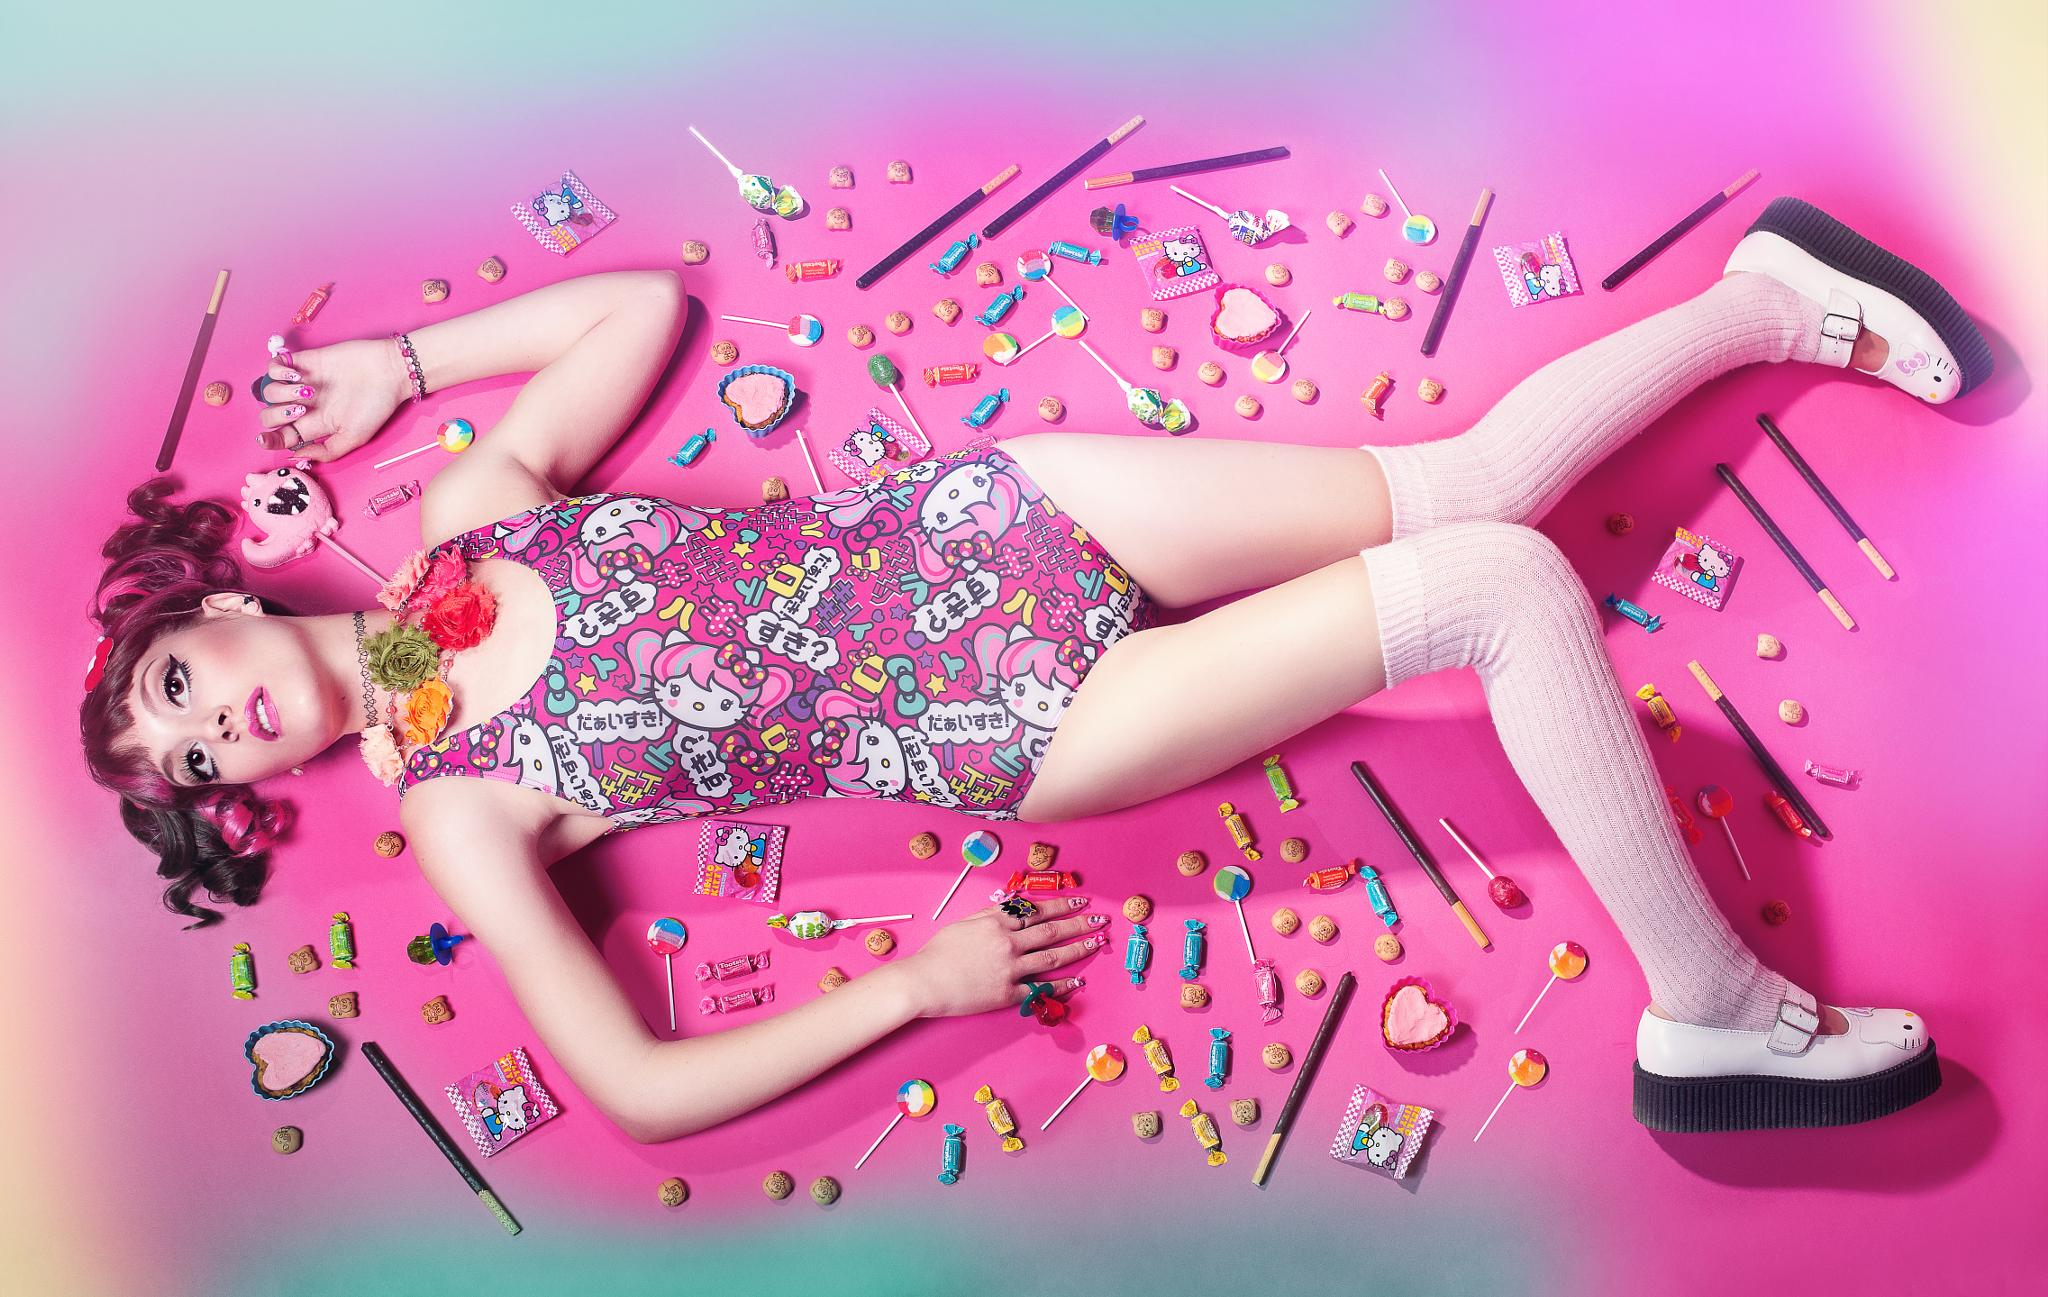 Candy by Valerie Thompson